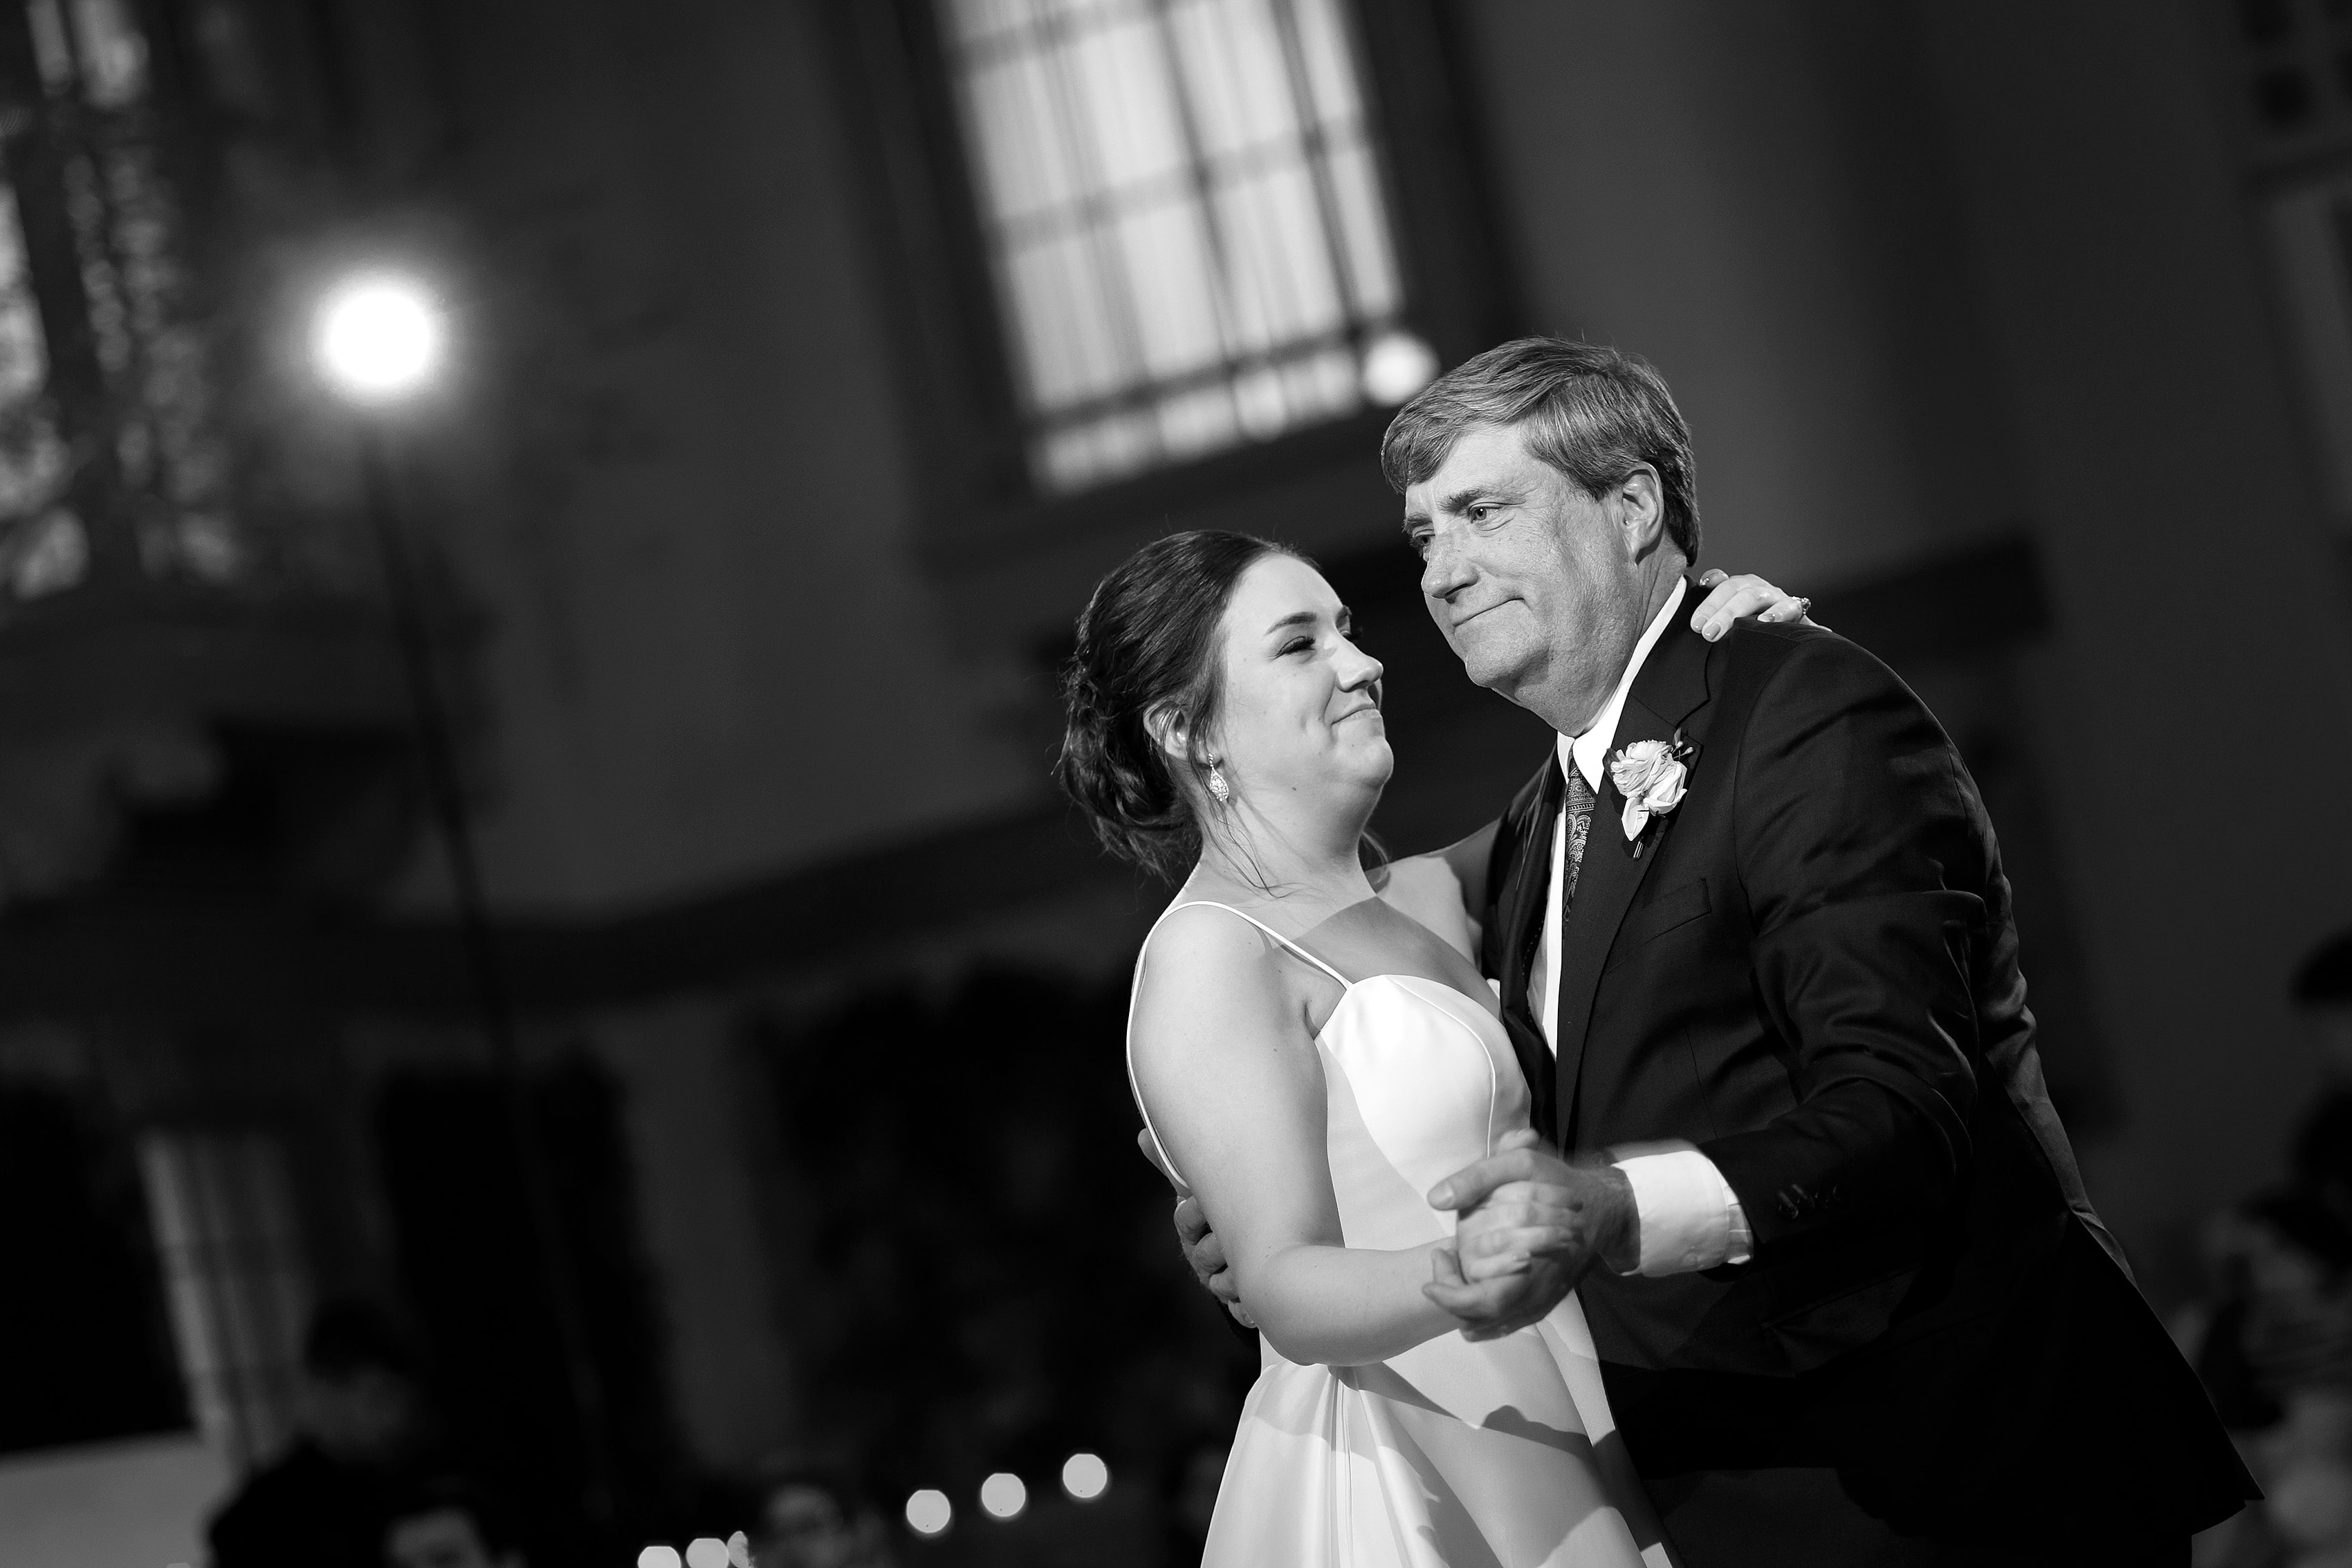 Bride and father first dance during wedding reception at Harold Washington Library